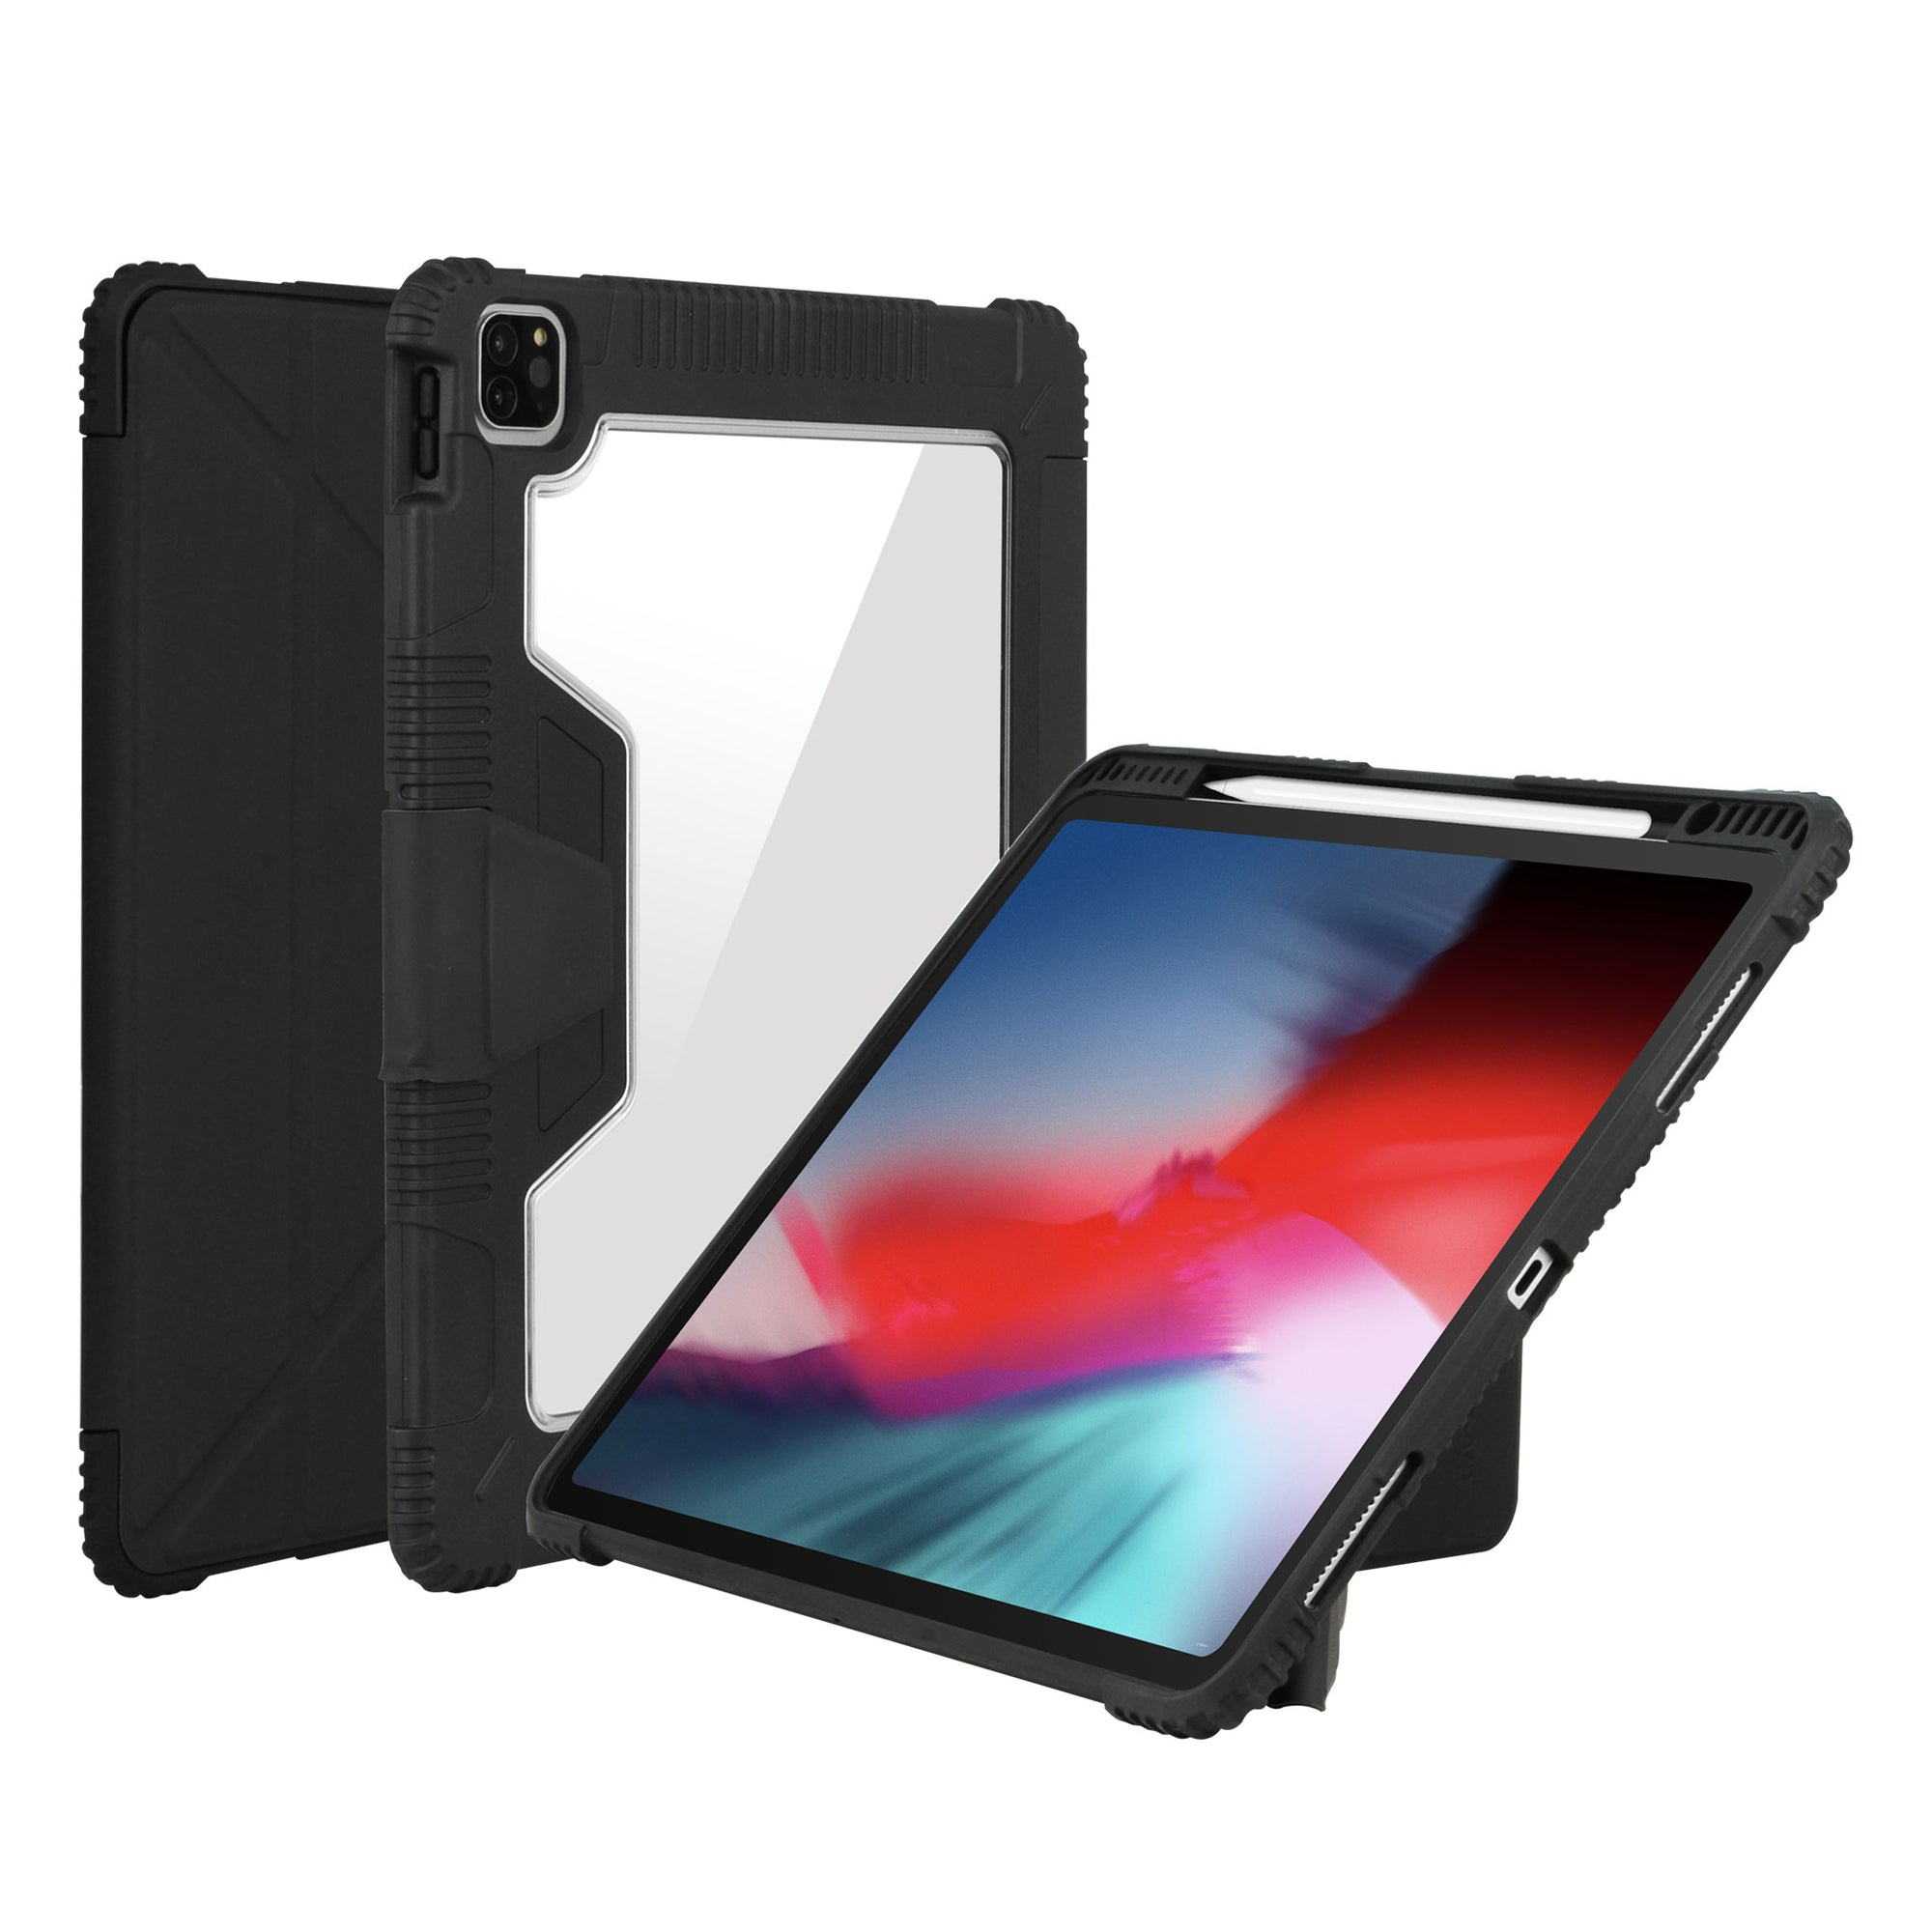 BUMPER FOLIO Flip Case for iPad Pro 12.9-inch (2020 Early)